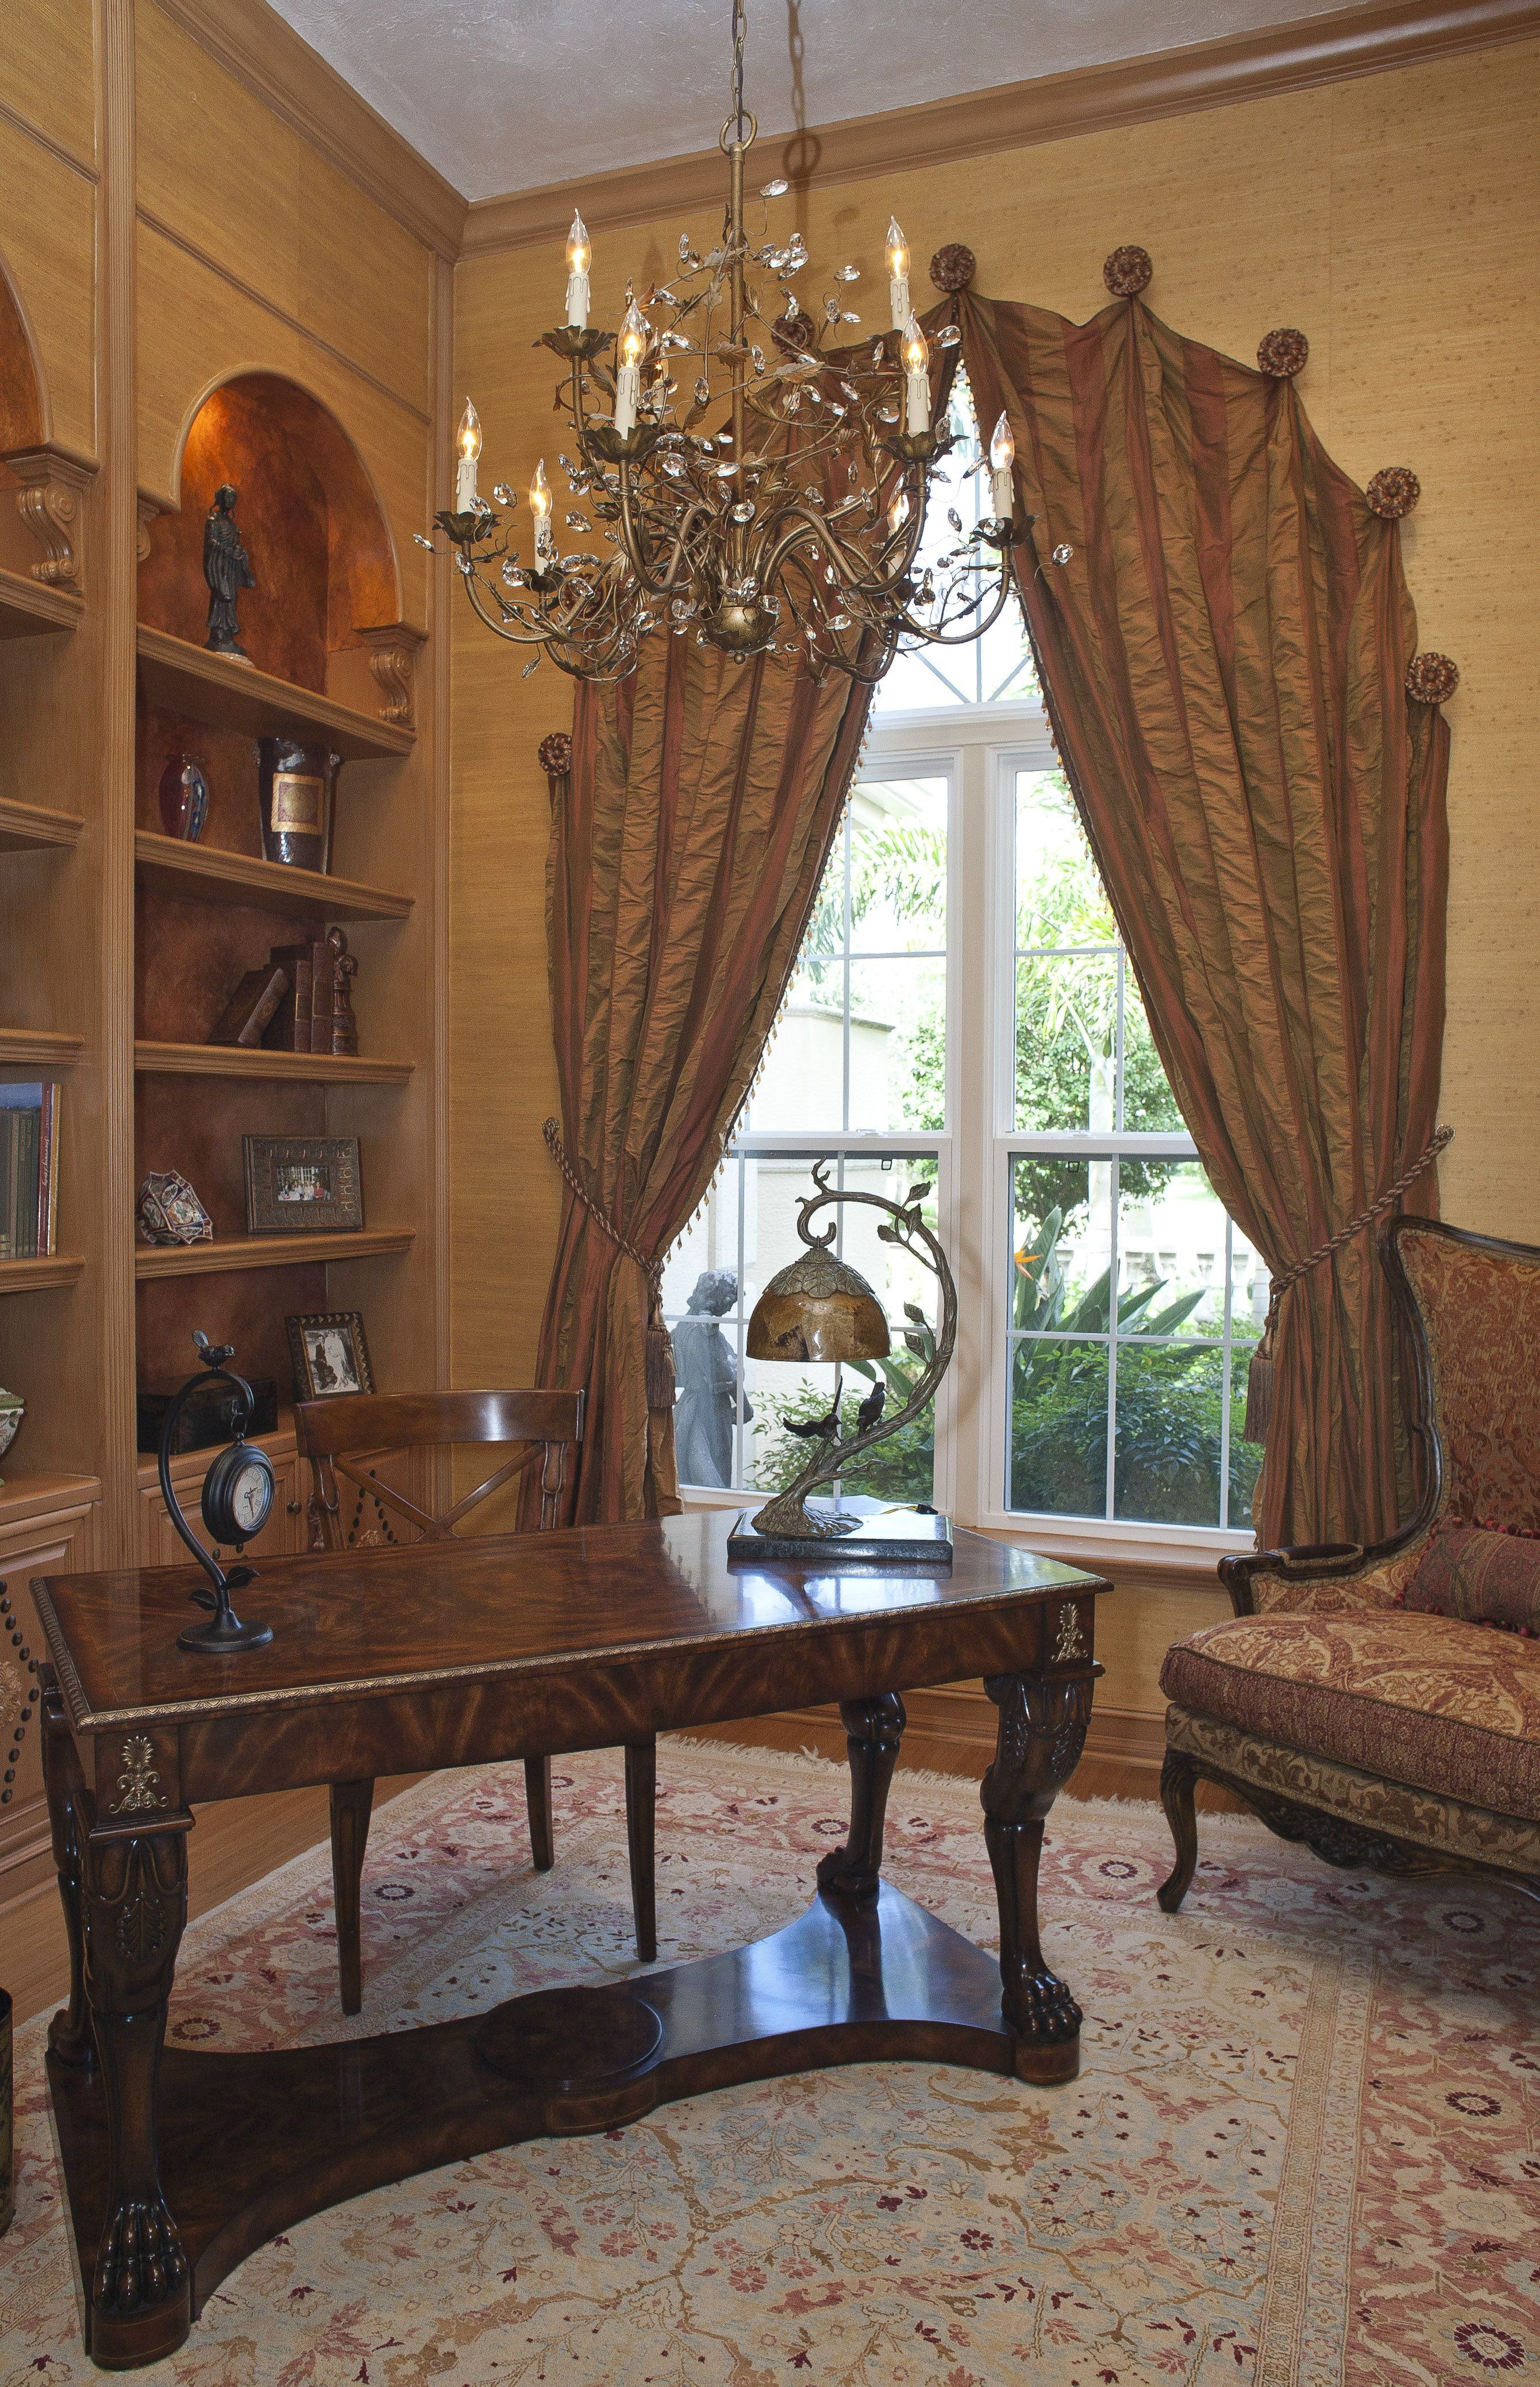 arched window treatment curtains and window treatments. Black Bedroom Furniture Sets. Home Design Ideas